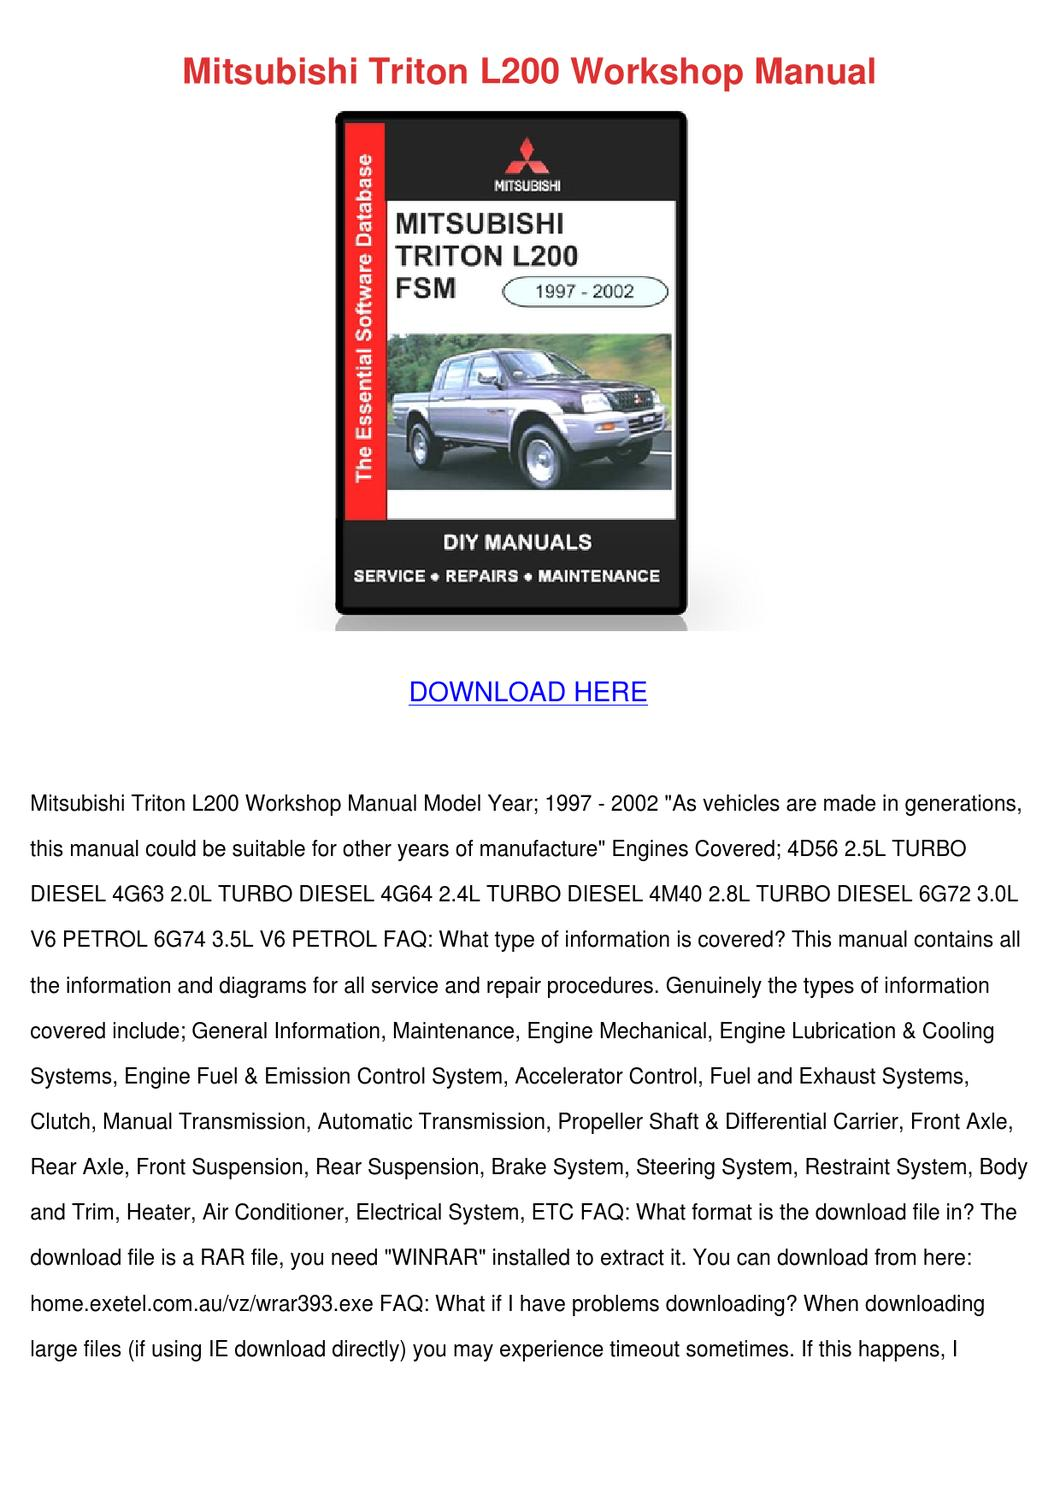 Mitsubishi Triton L200 Workshop Manual by Noreen Meilleur